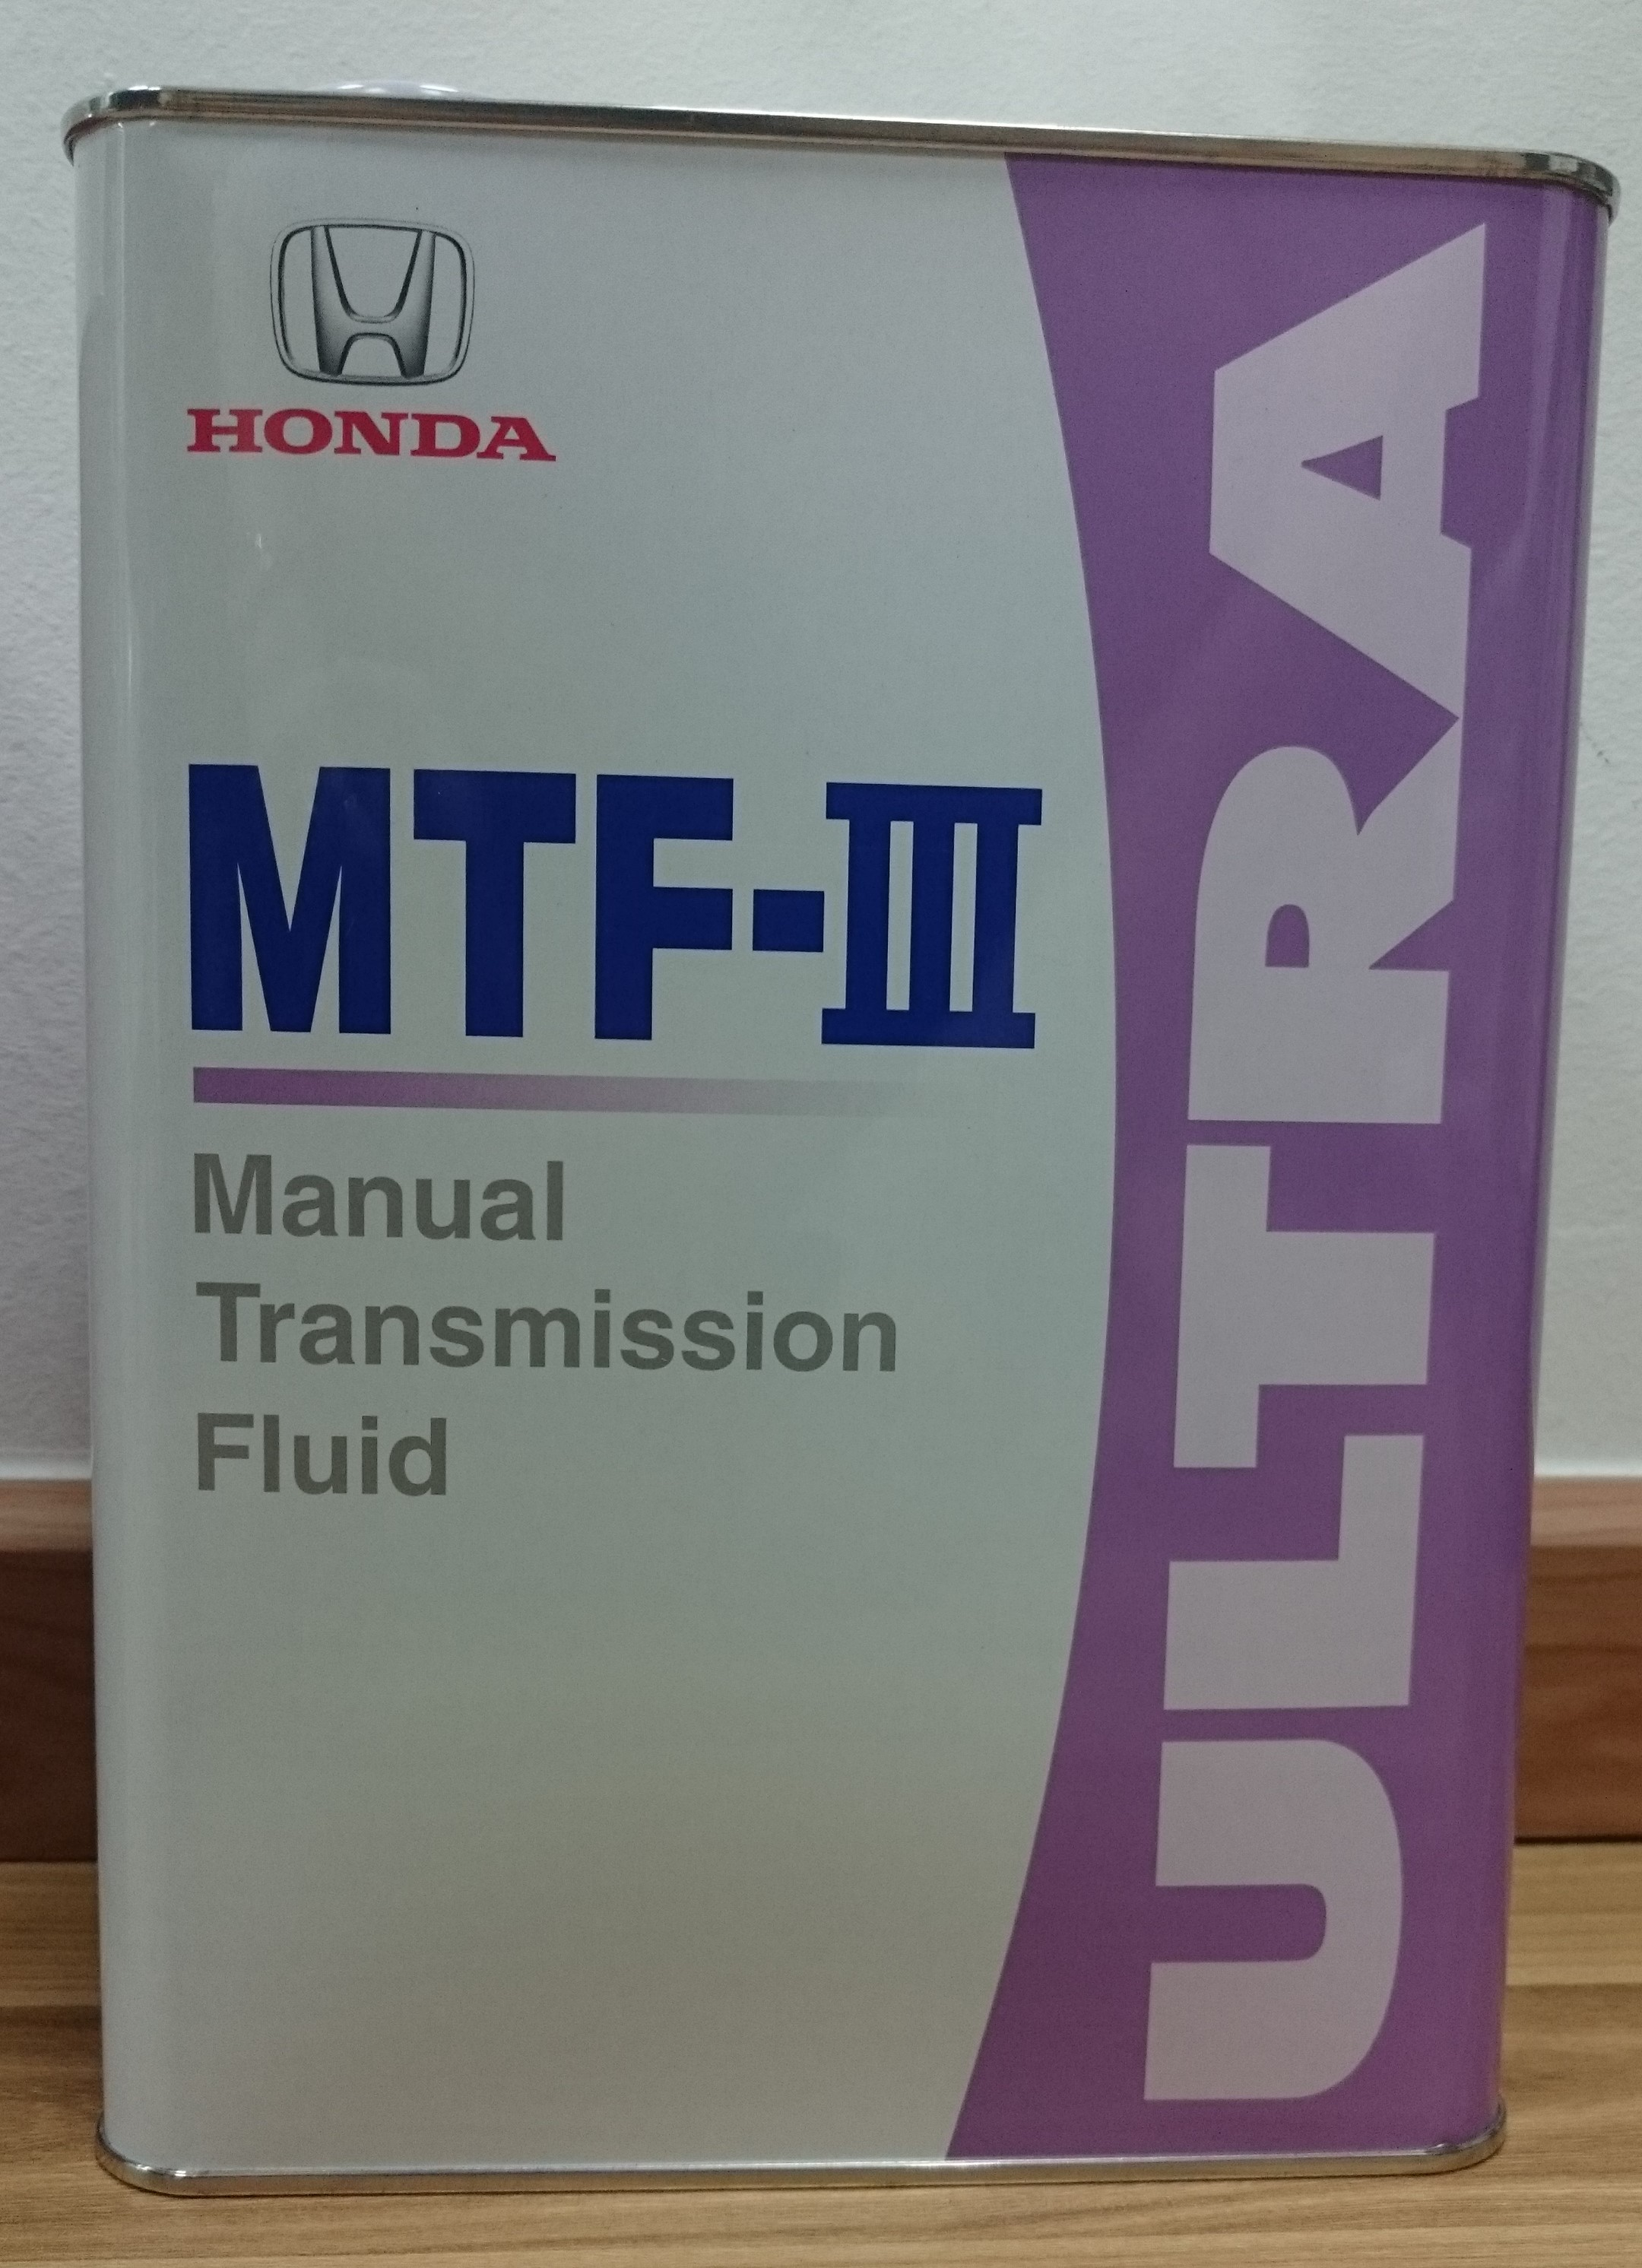 HONDA ULTRA MTF III / ULTRA MANUAL TRANSMISSION FLUID ~ 4L